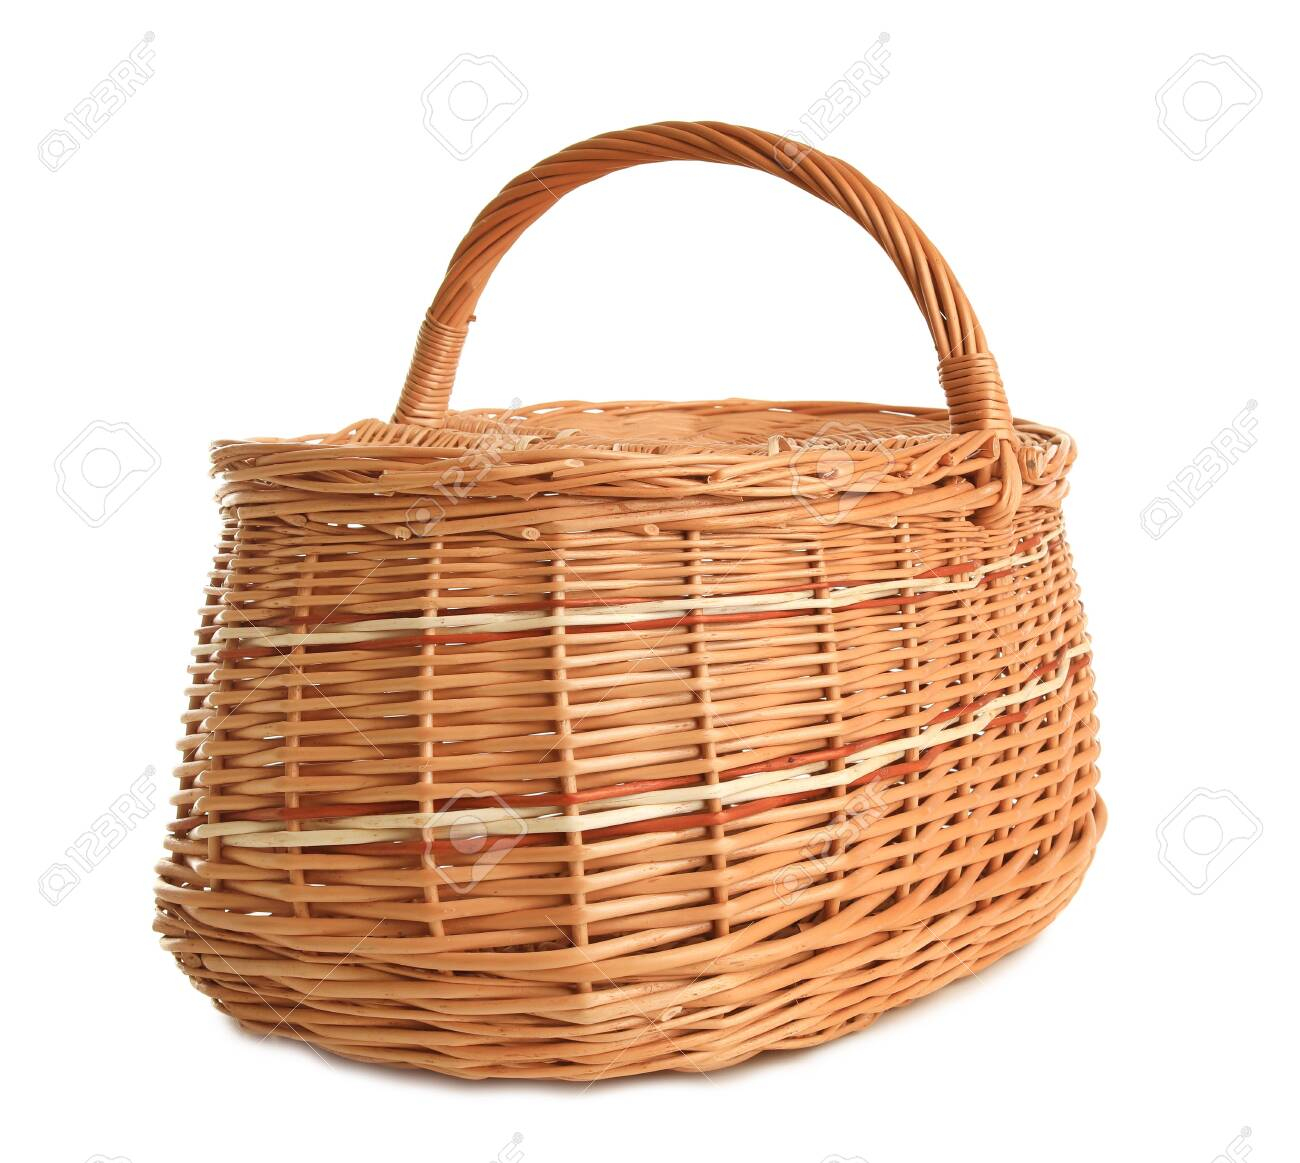 Empty wicker picnic basket isolated on white - 126607707